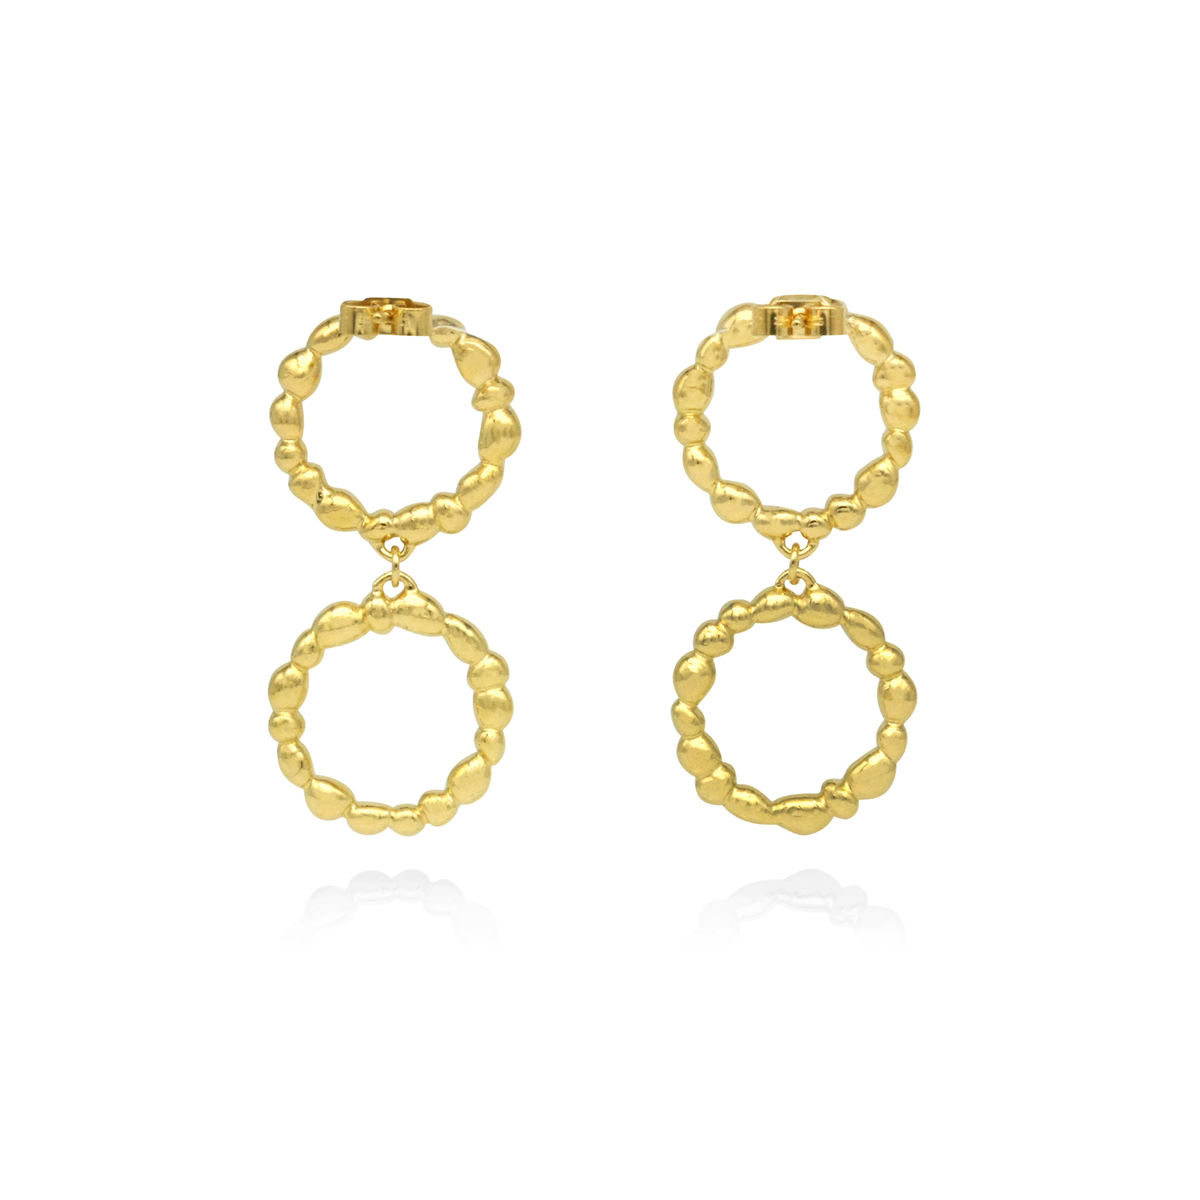 SHIMMER circle drop earrings - gold plated sterling silver - product images  of